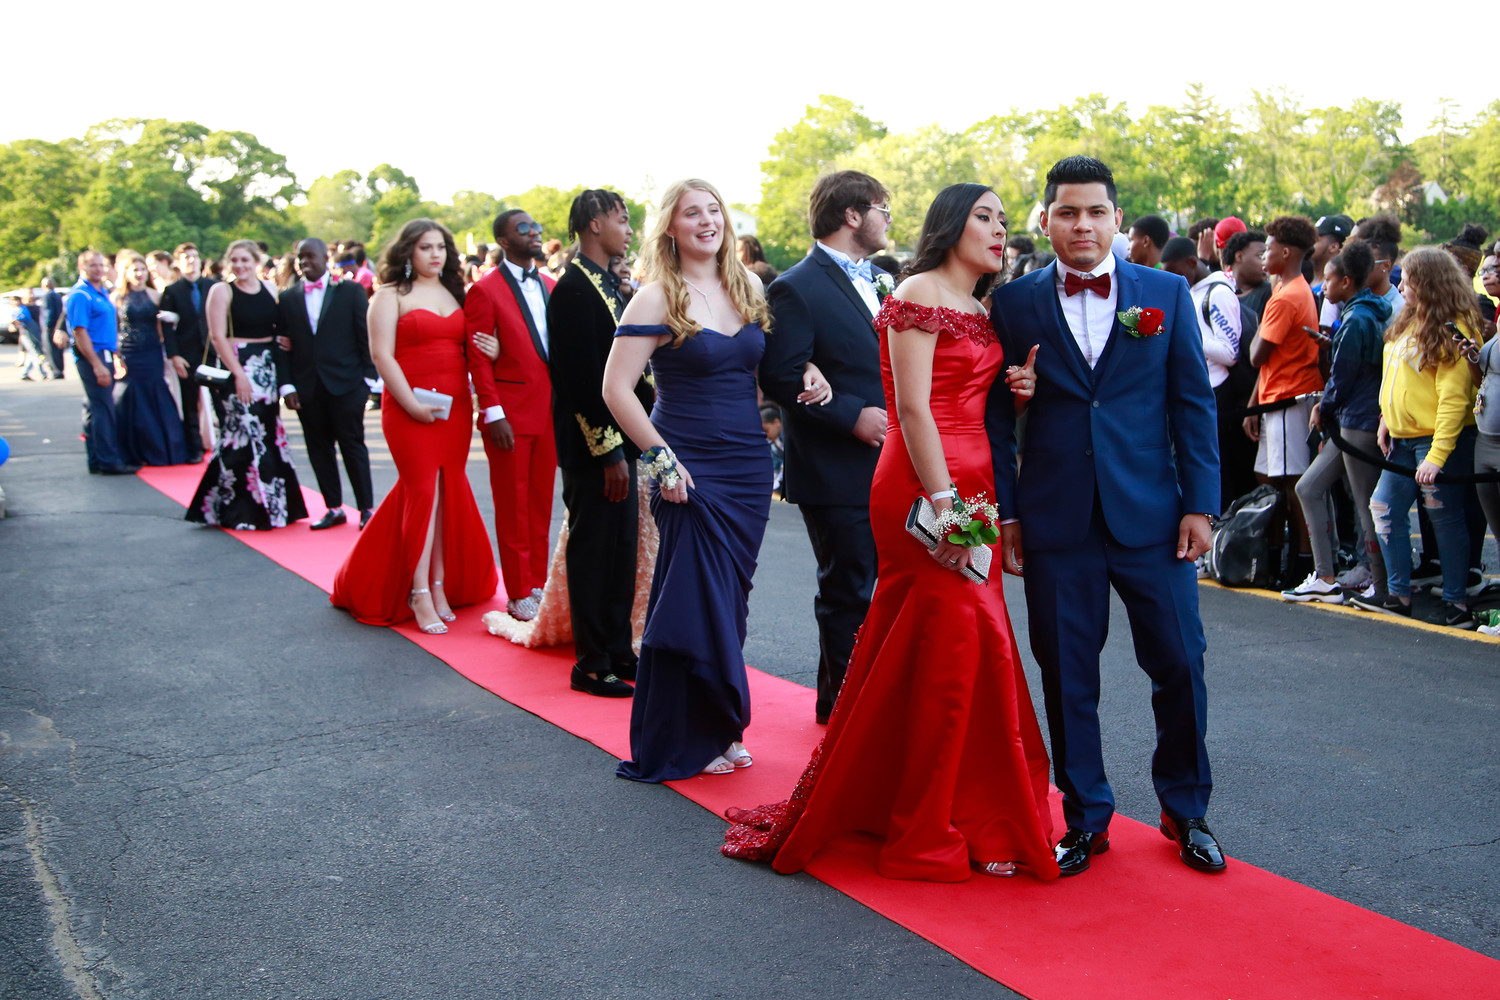 Seniors lined up on the red carpet at Malverne High School on June 7 to take part in the pre-prom festivities.